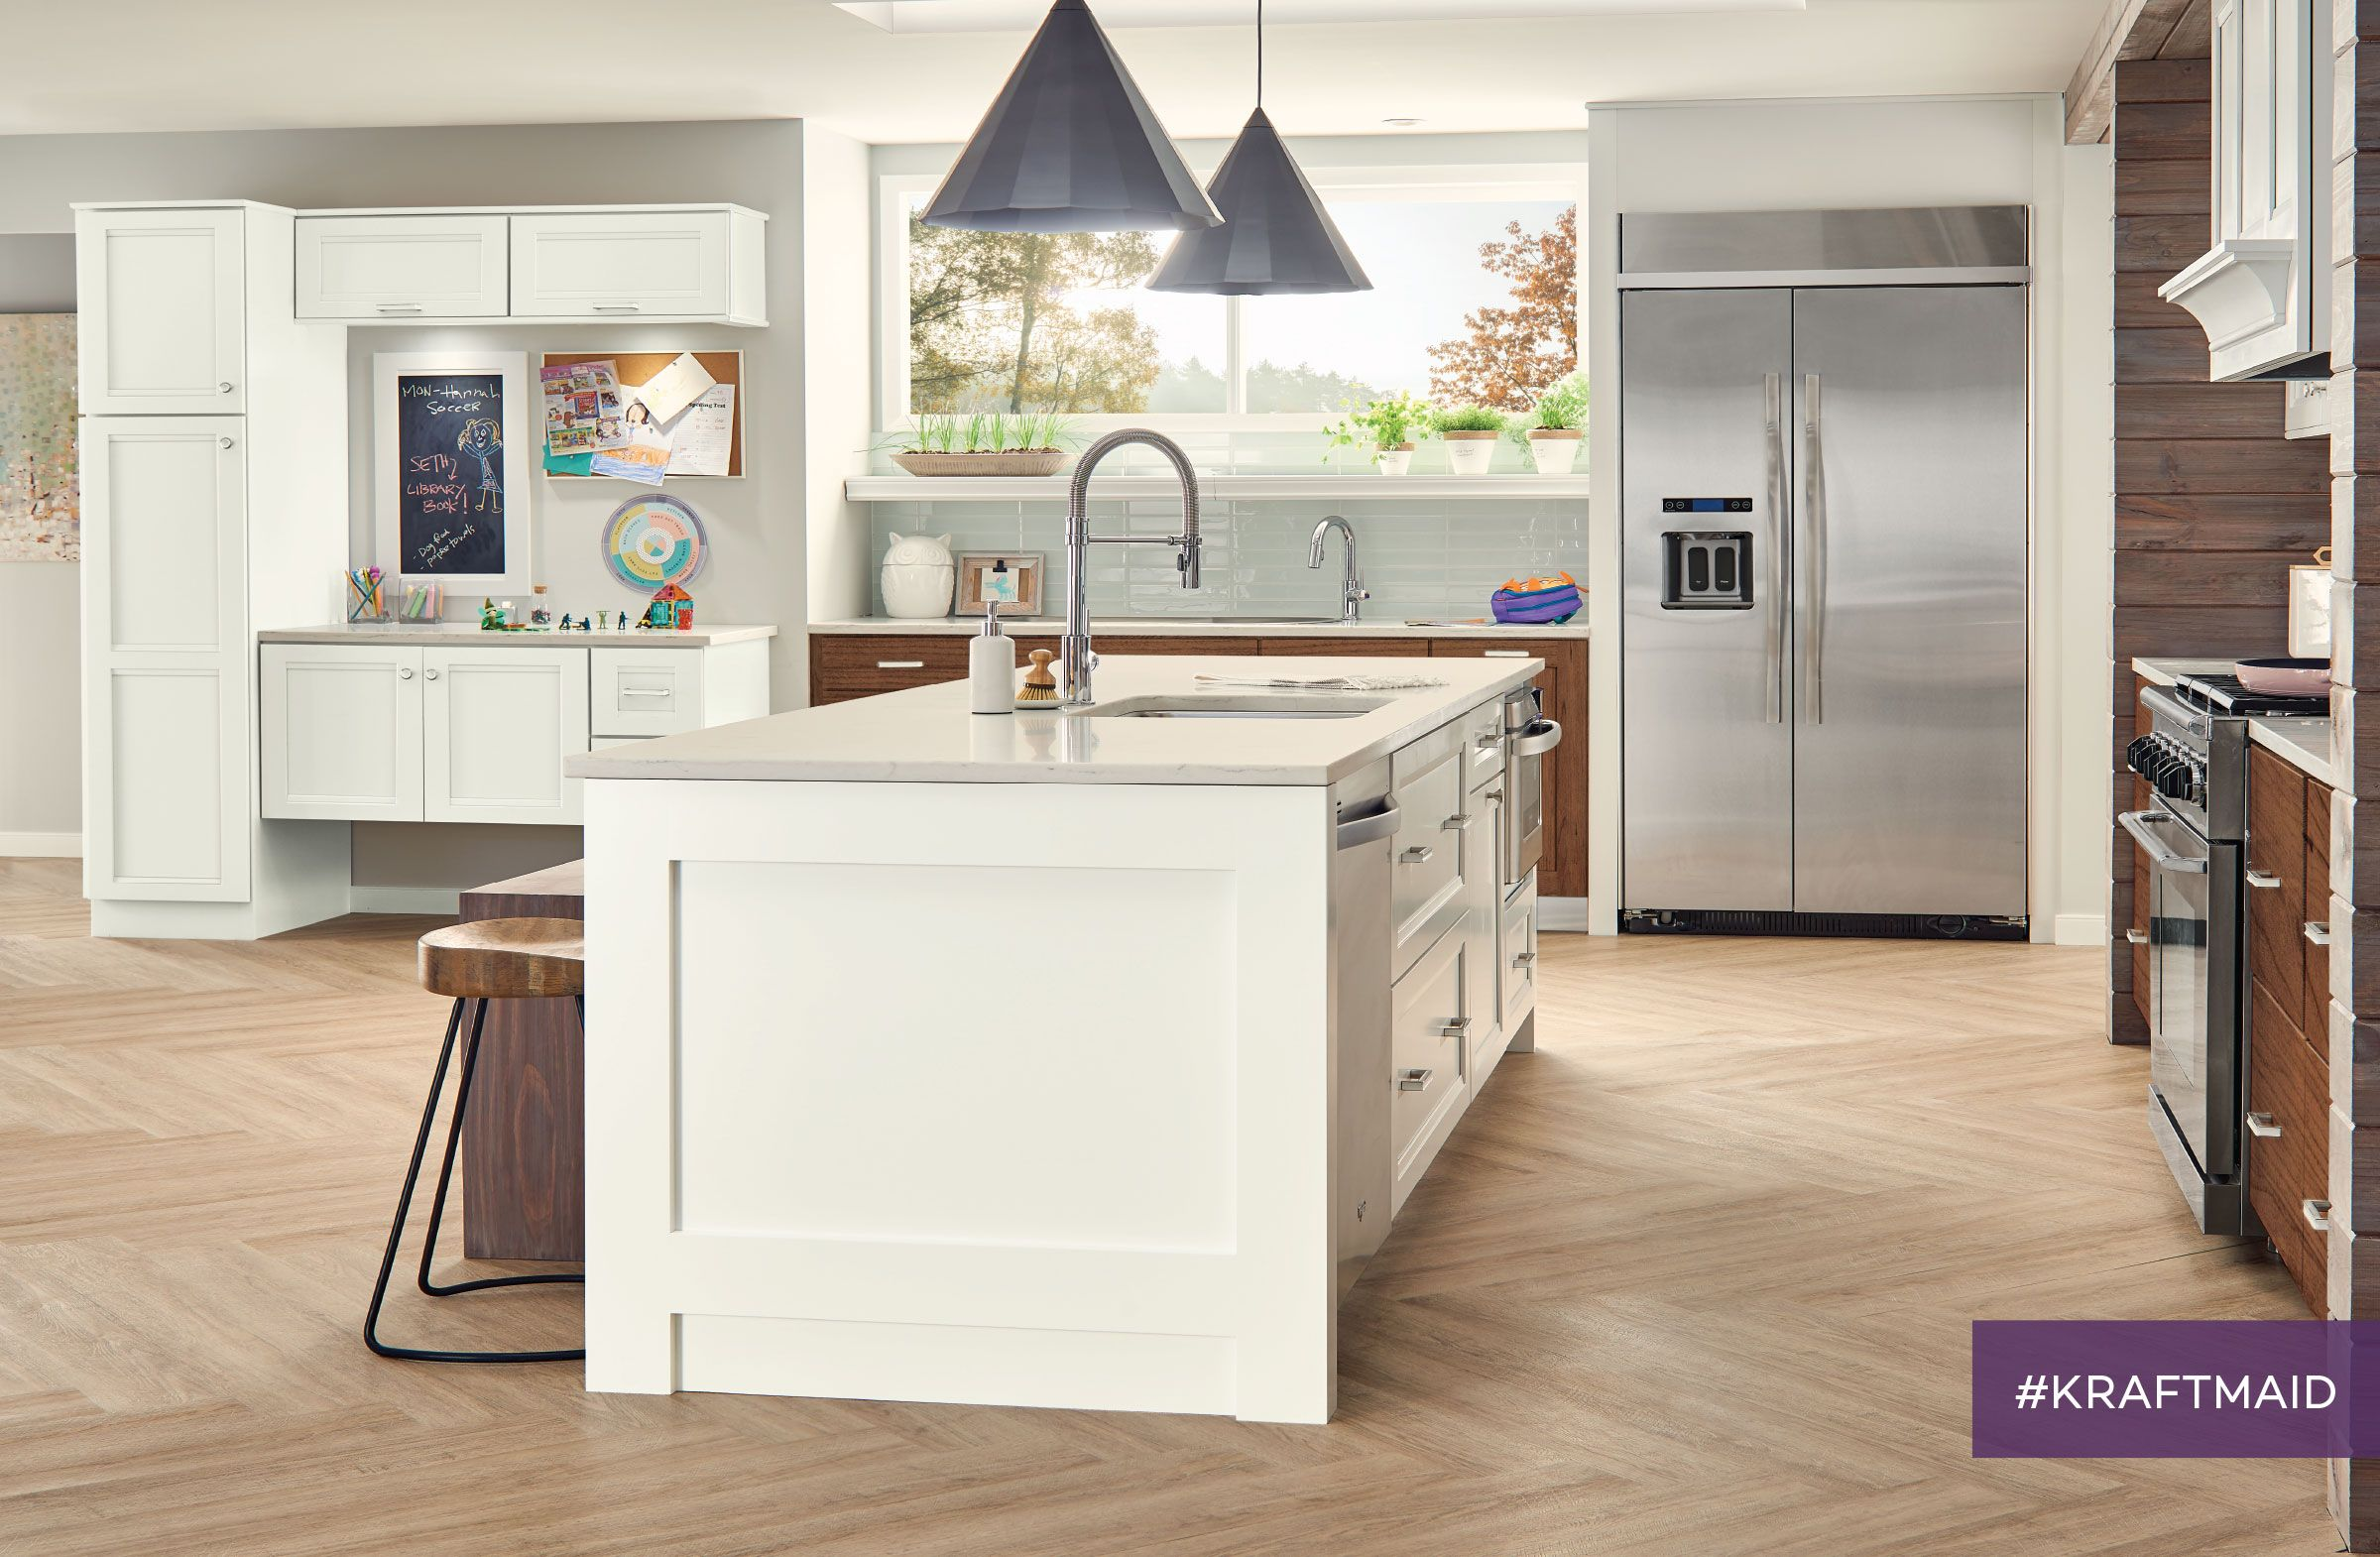 Consider a KraftMaid® Gateway Island End in Dove White for a ... on movable kitchen islands, old farmhouse kitchen islands, wellborn kitchen islands, kitchen cabinets islands, hickory wood kitchen islands, corian kitchen islands, furniture style kitchen islands, bertch kitchen islands, ikea kitchen islands, tresanti kitchen islands, medallion kitchen islands, marsh kitchen islands, discount kitchen islands, home depot kitchen islands, estate kitchen islands, favorite kitchen islands, havertys kitchen islands, kohler kitchen islands, american woodmark kitchen islands, shiloh kitchen islands,